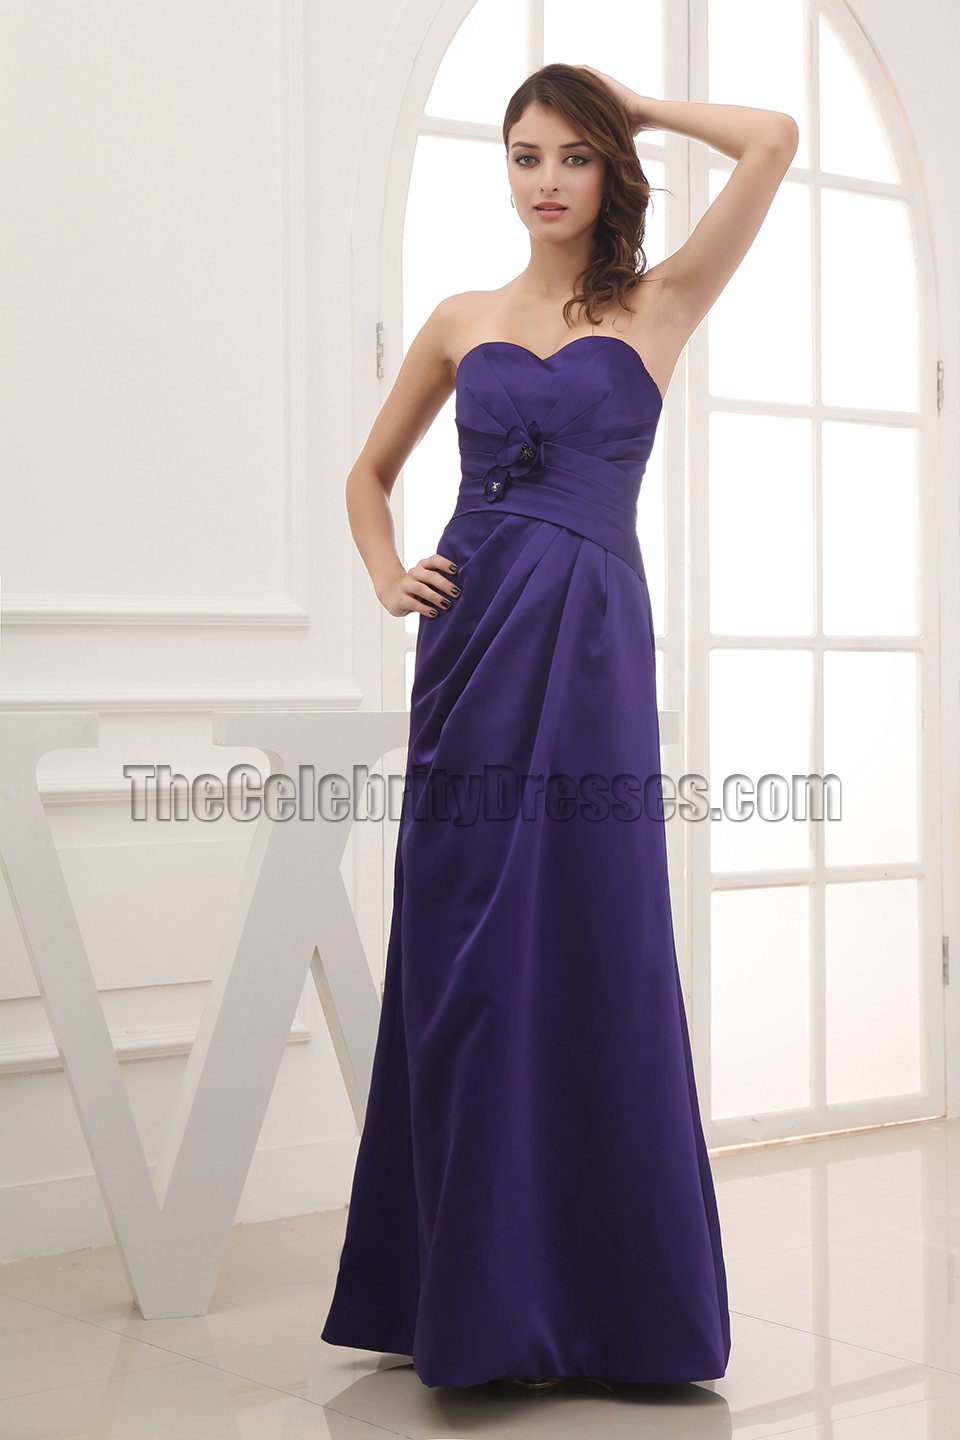 Discount strapless sweetheart prom gown bridesmaid dresses for Cheap strapless wedding dresses